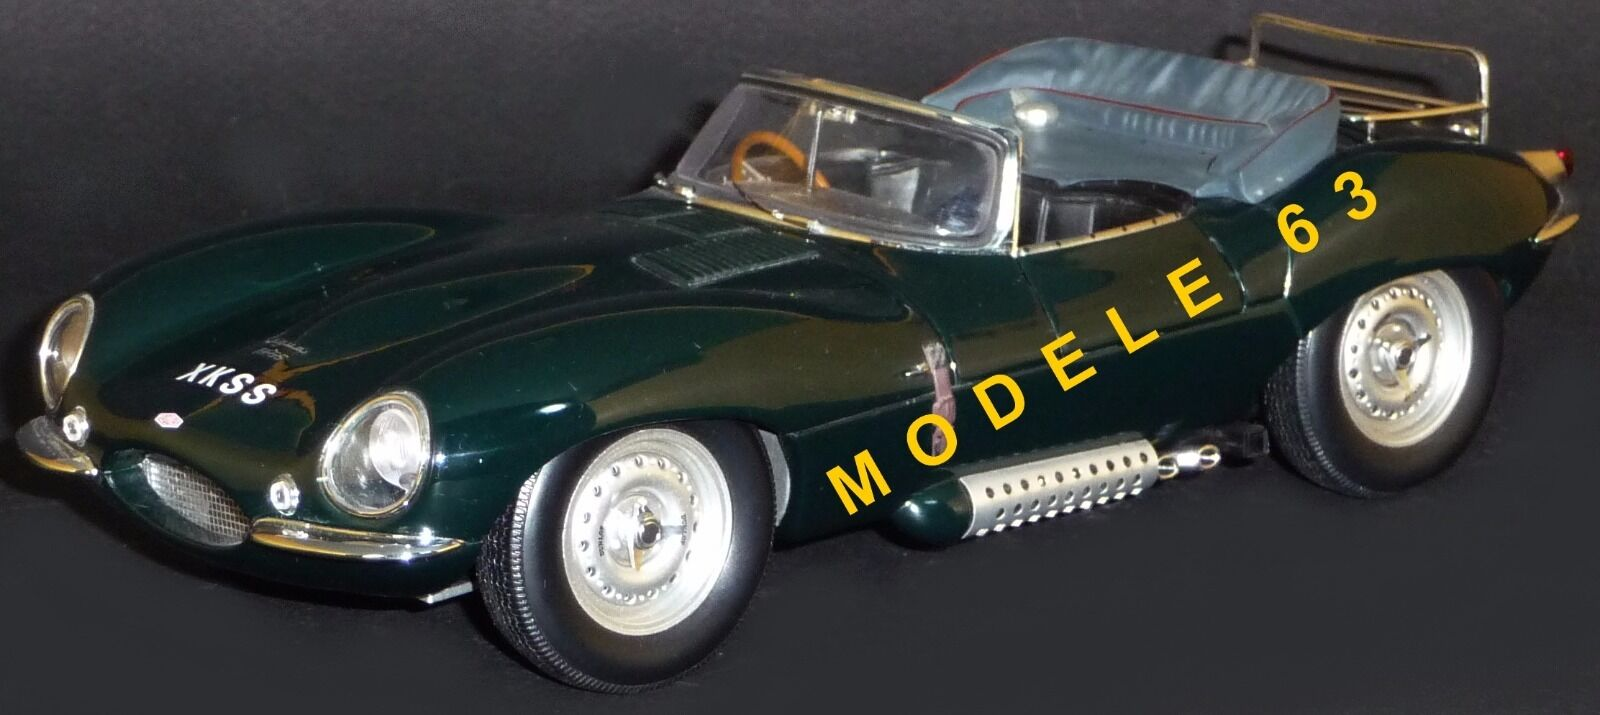 Jaguar xk ss year 1957 green color 1 18 73511 autoart